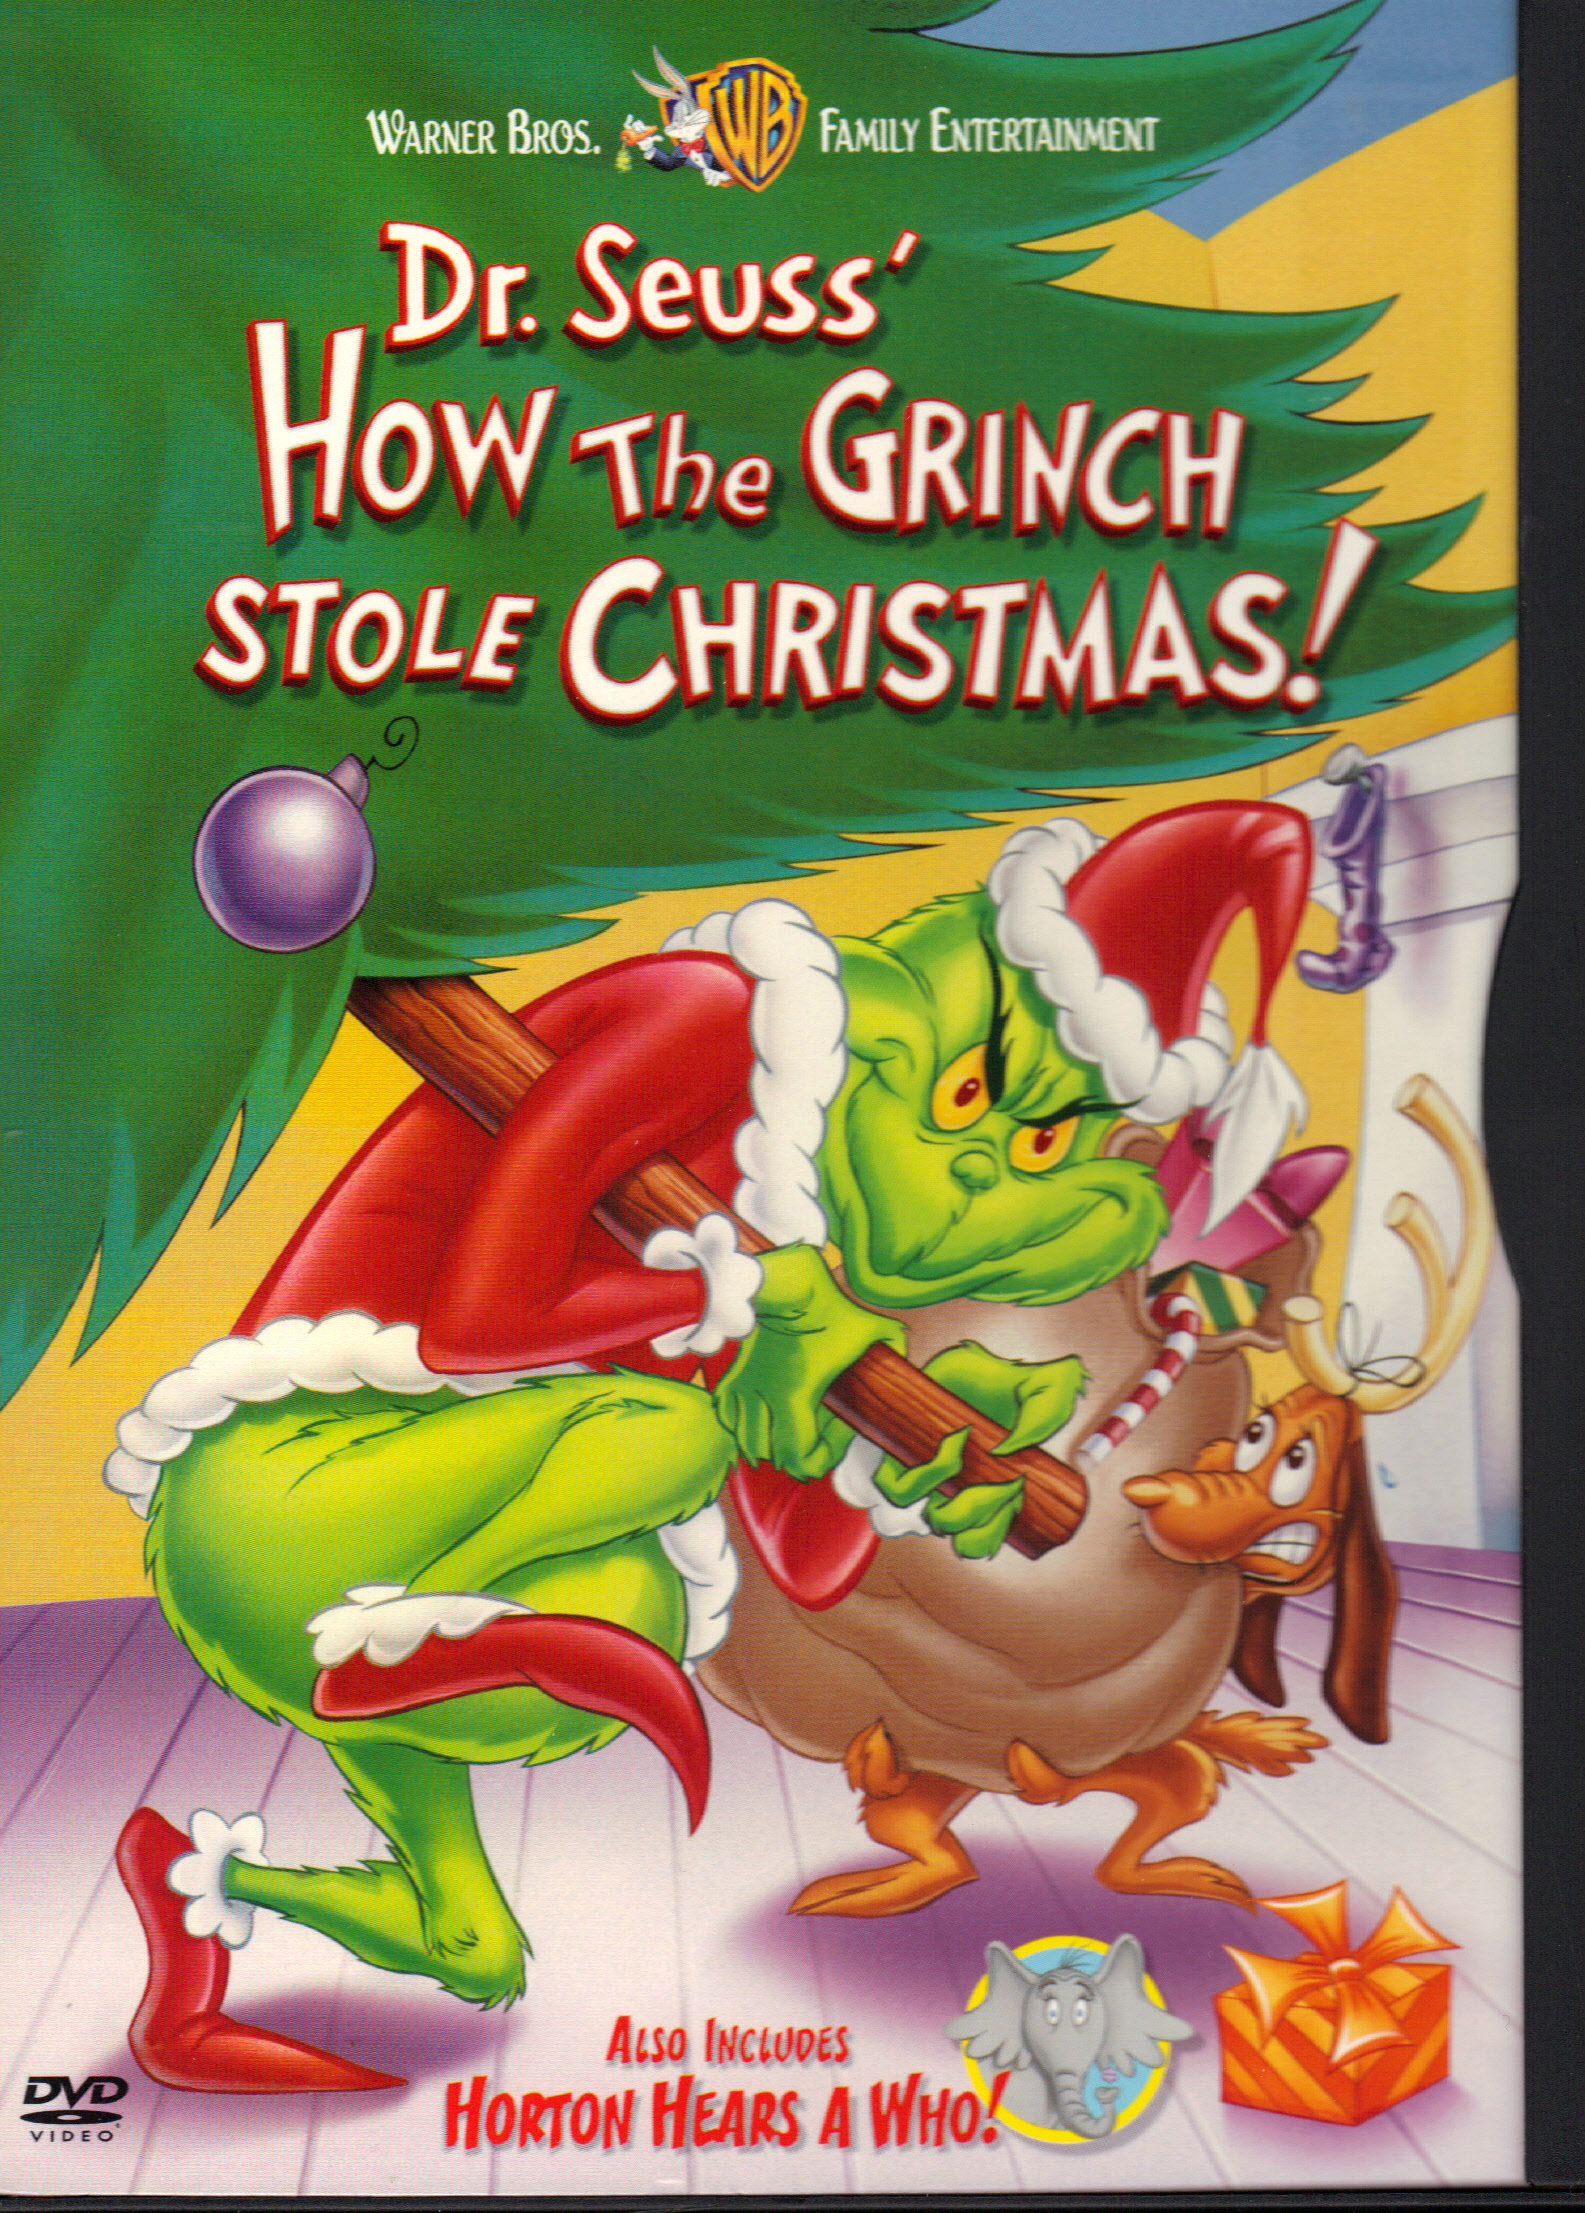 Image for HOW THE GRINCH STOLE CHRISTMAS! and HORTON HEARS A WHO!